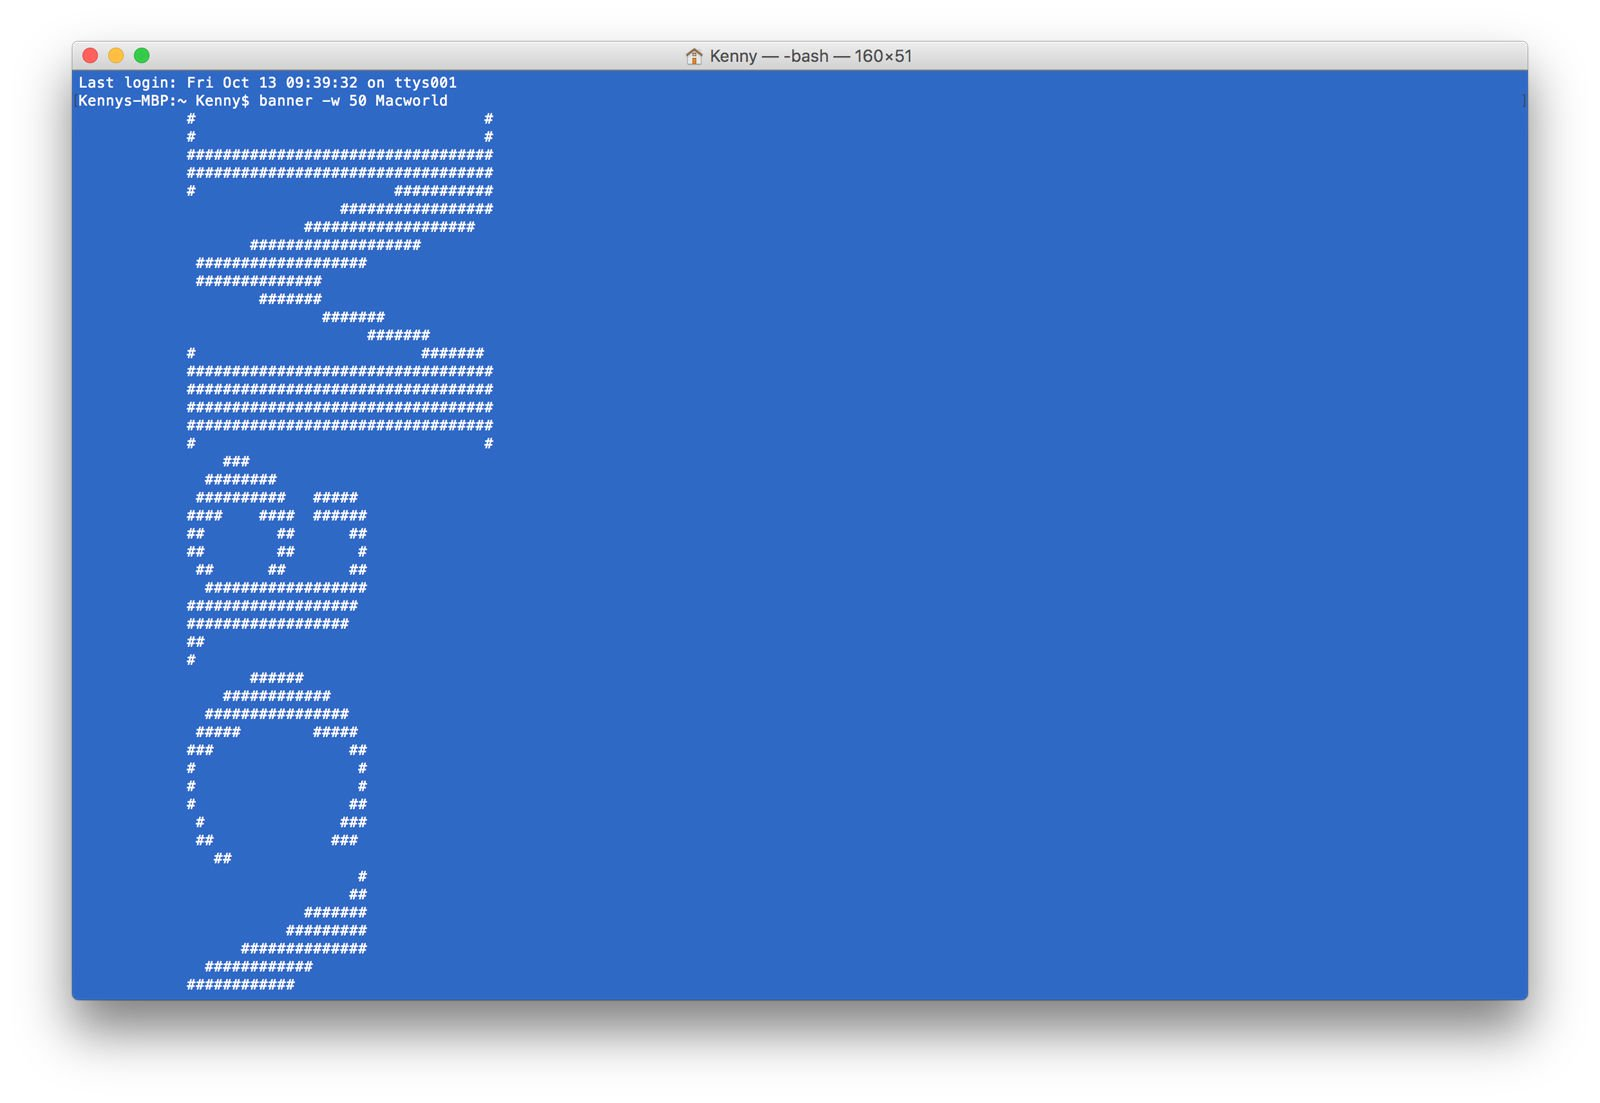 Terminal tips, tricks and projects for Mac: Ascii art